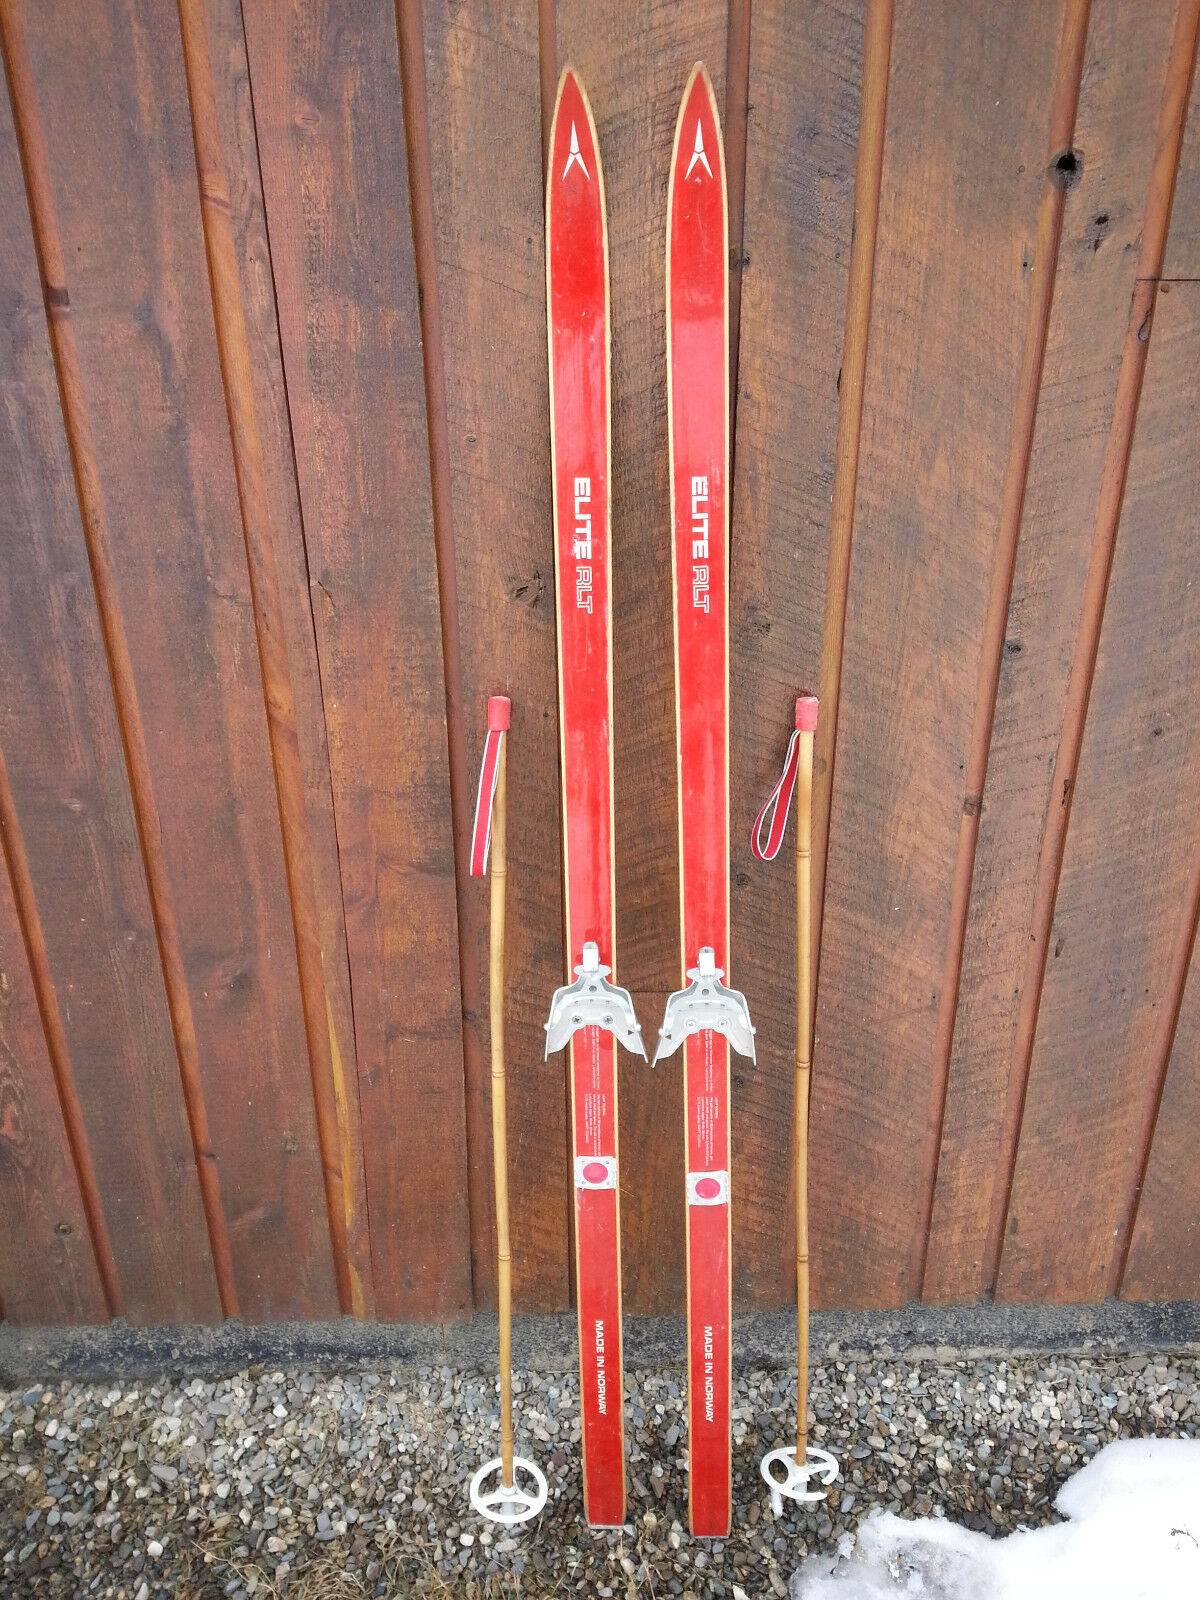 VINTAGE Wooden 63  Skis Signed  ELITE with  RED Finish + Poles  check out the cheapest